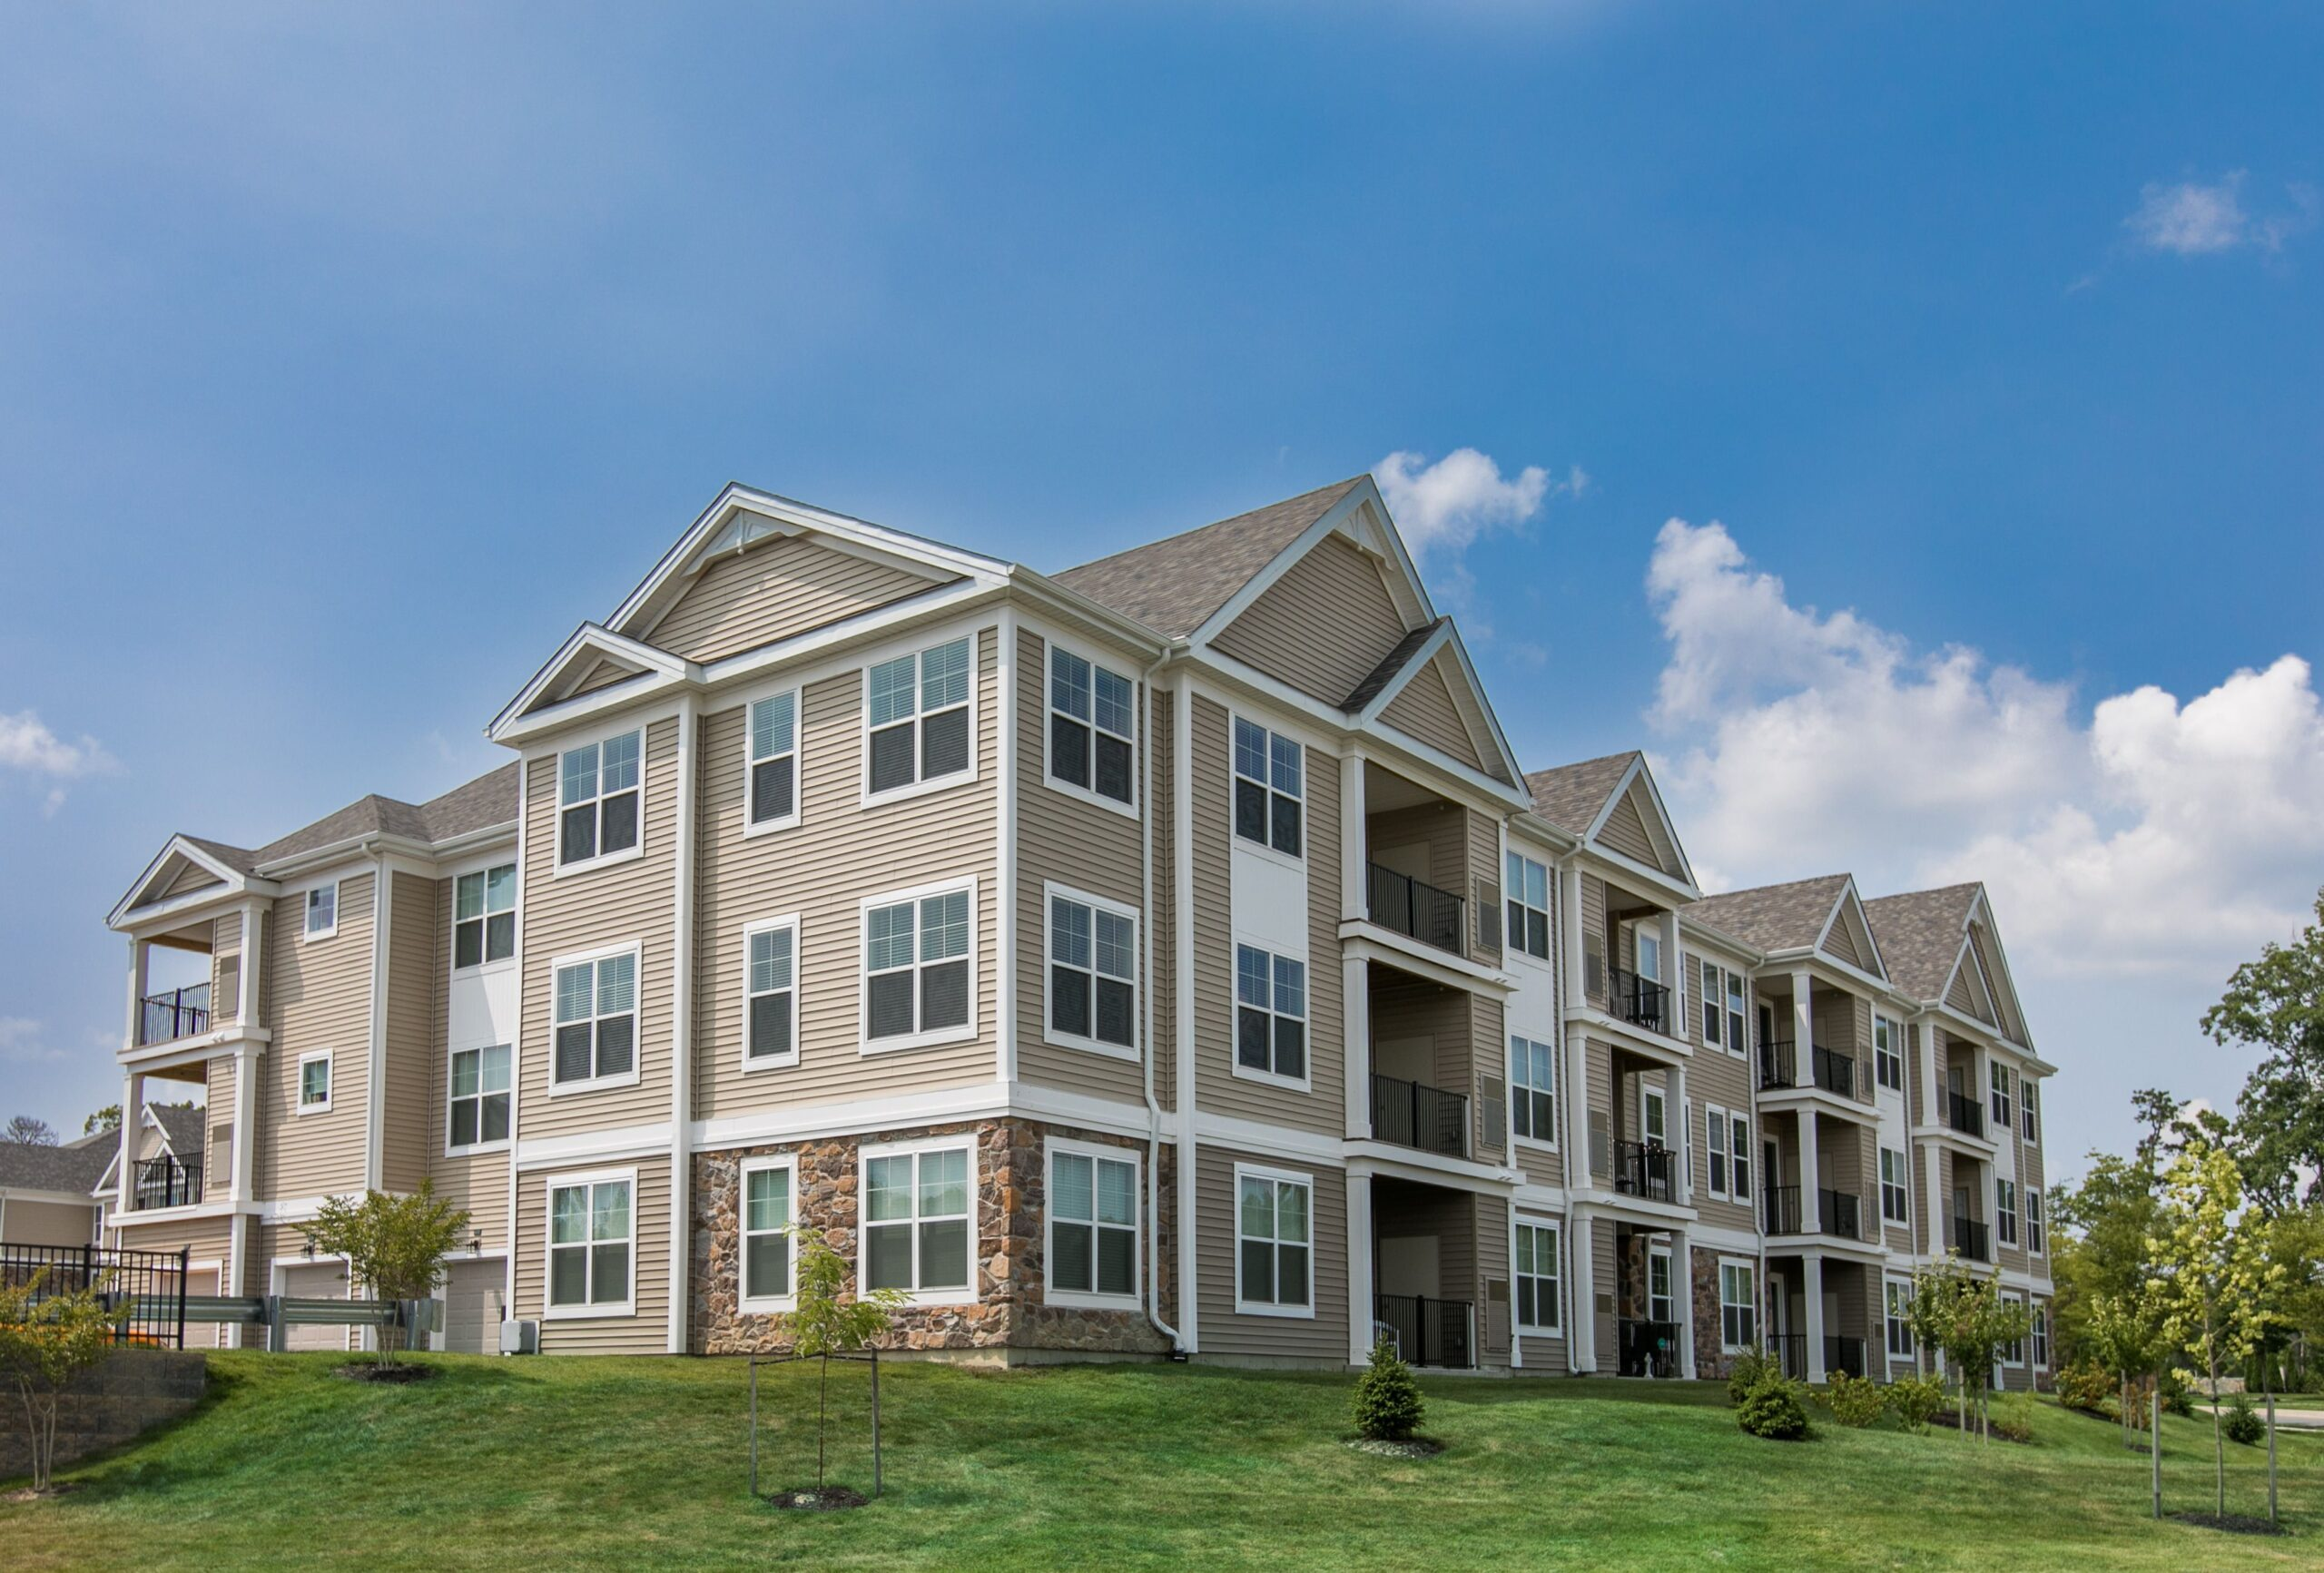 The Apartments at Charlestown Crossing, managed by Dolben, in Maryland